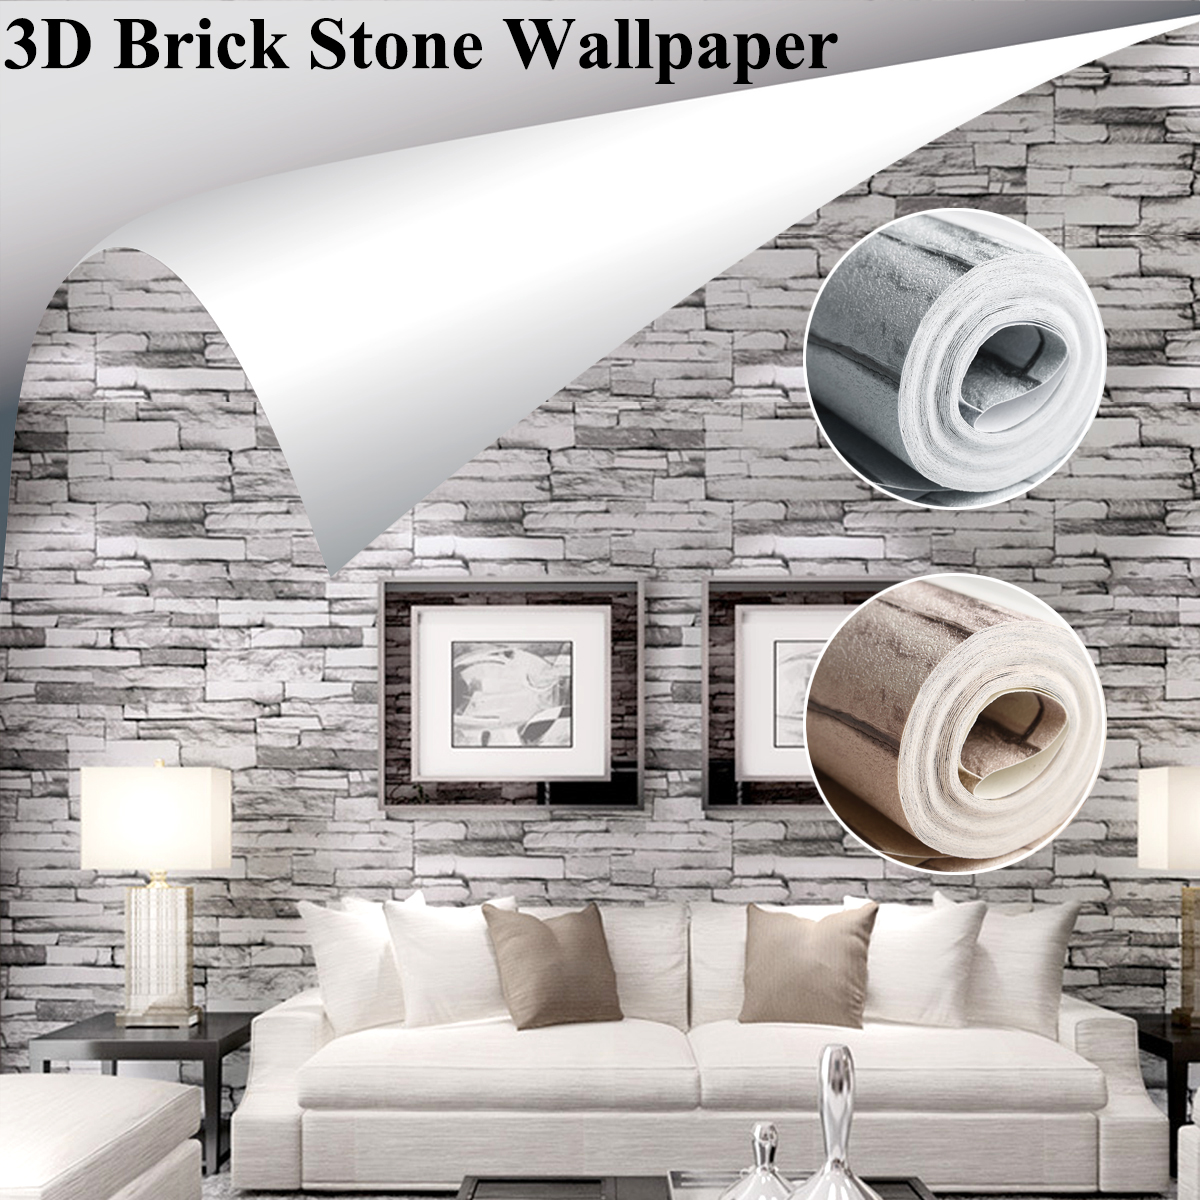 Modern 3D Brick Stone Wallpaper Vintage Brick Pattern For Living Room Wall Sticker Decor Waterproof TV Sofa Background цены